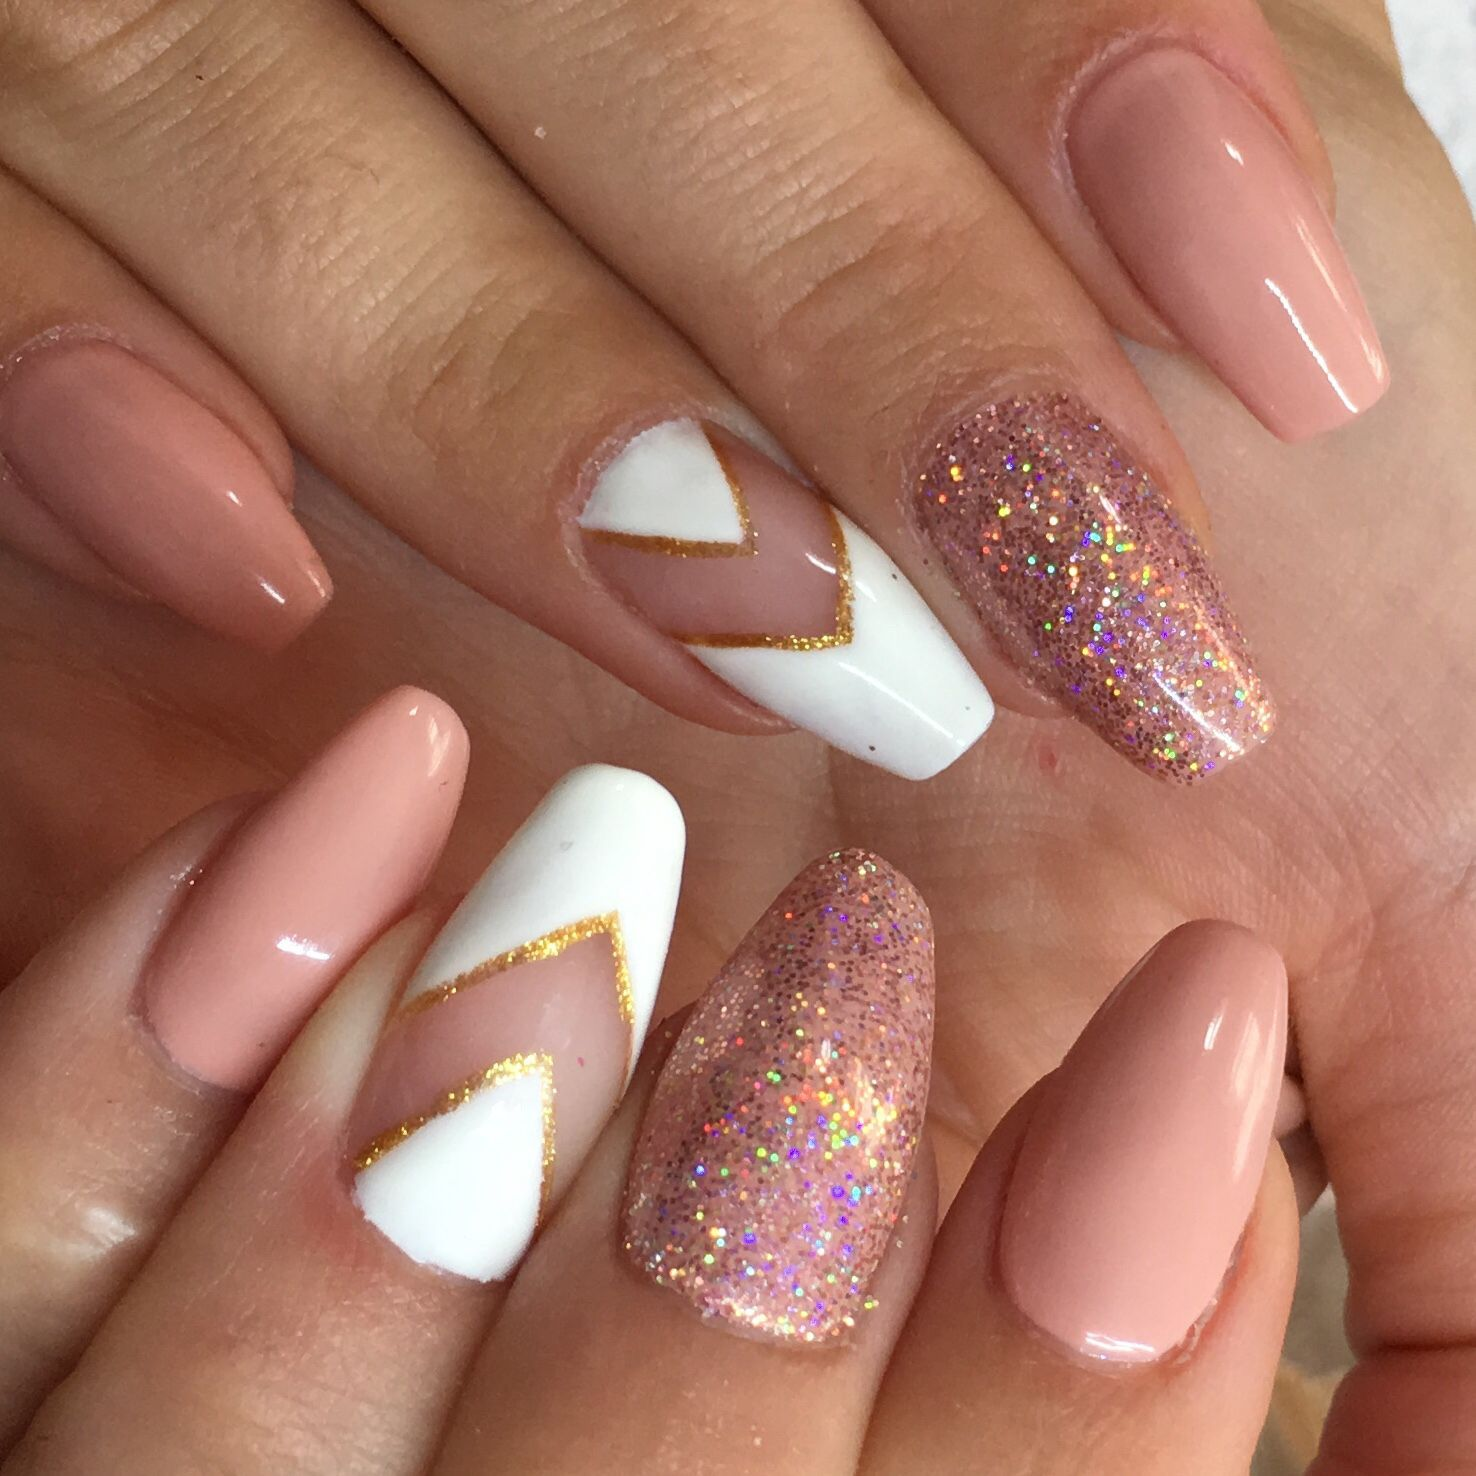 Sparkles Lines And Natural Colours Make This Gelish Polygel Extension Set Pop Perfect For The Understated Sparkly Autumn Look Nai Nails Manicure Nail Art